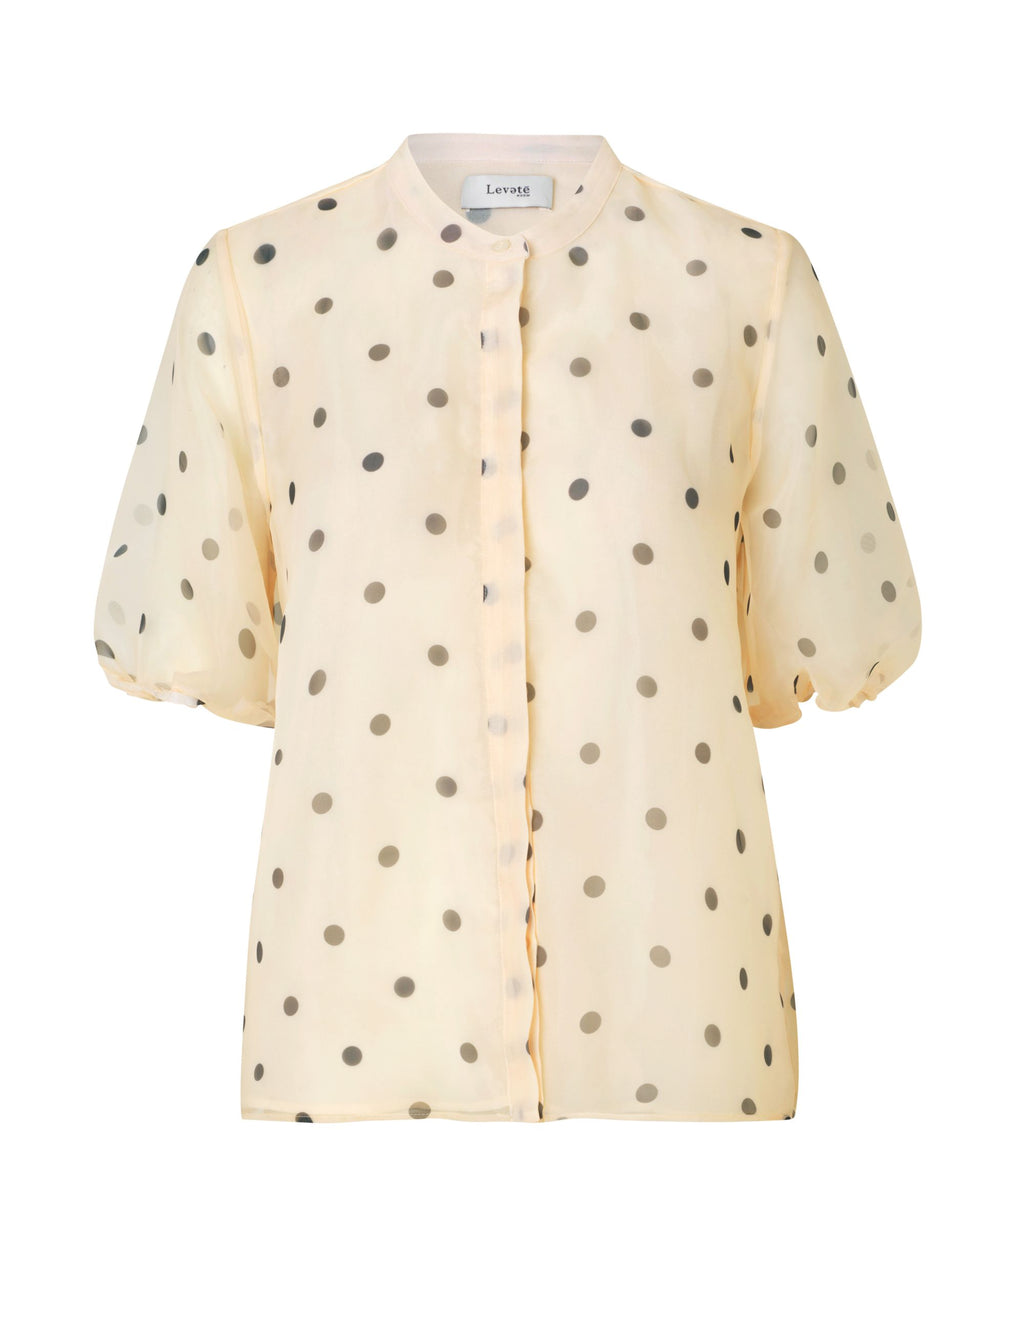 Levete Room Kada Blouse - Cream